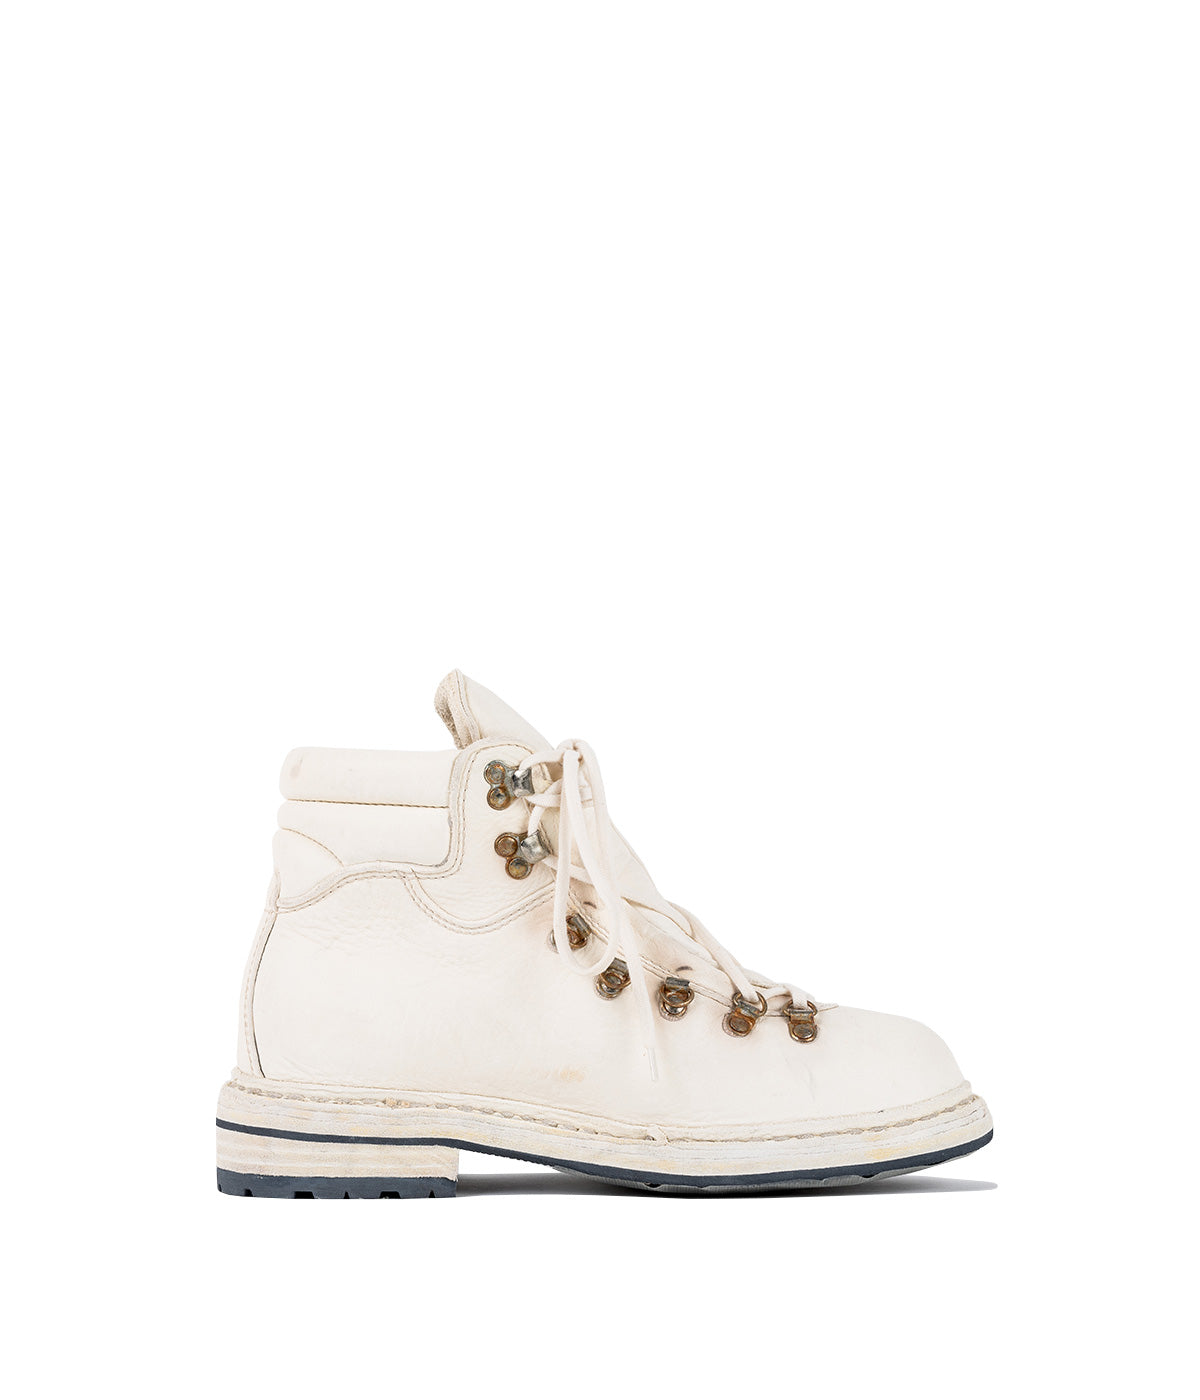 White Full Grain Hiking Boots